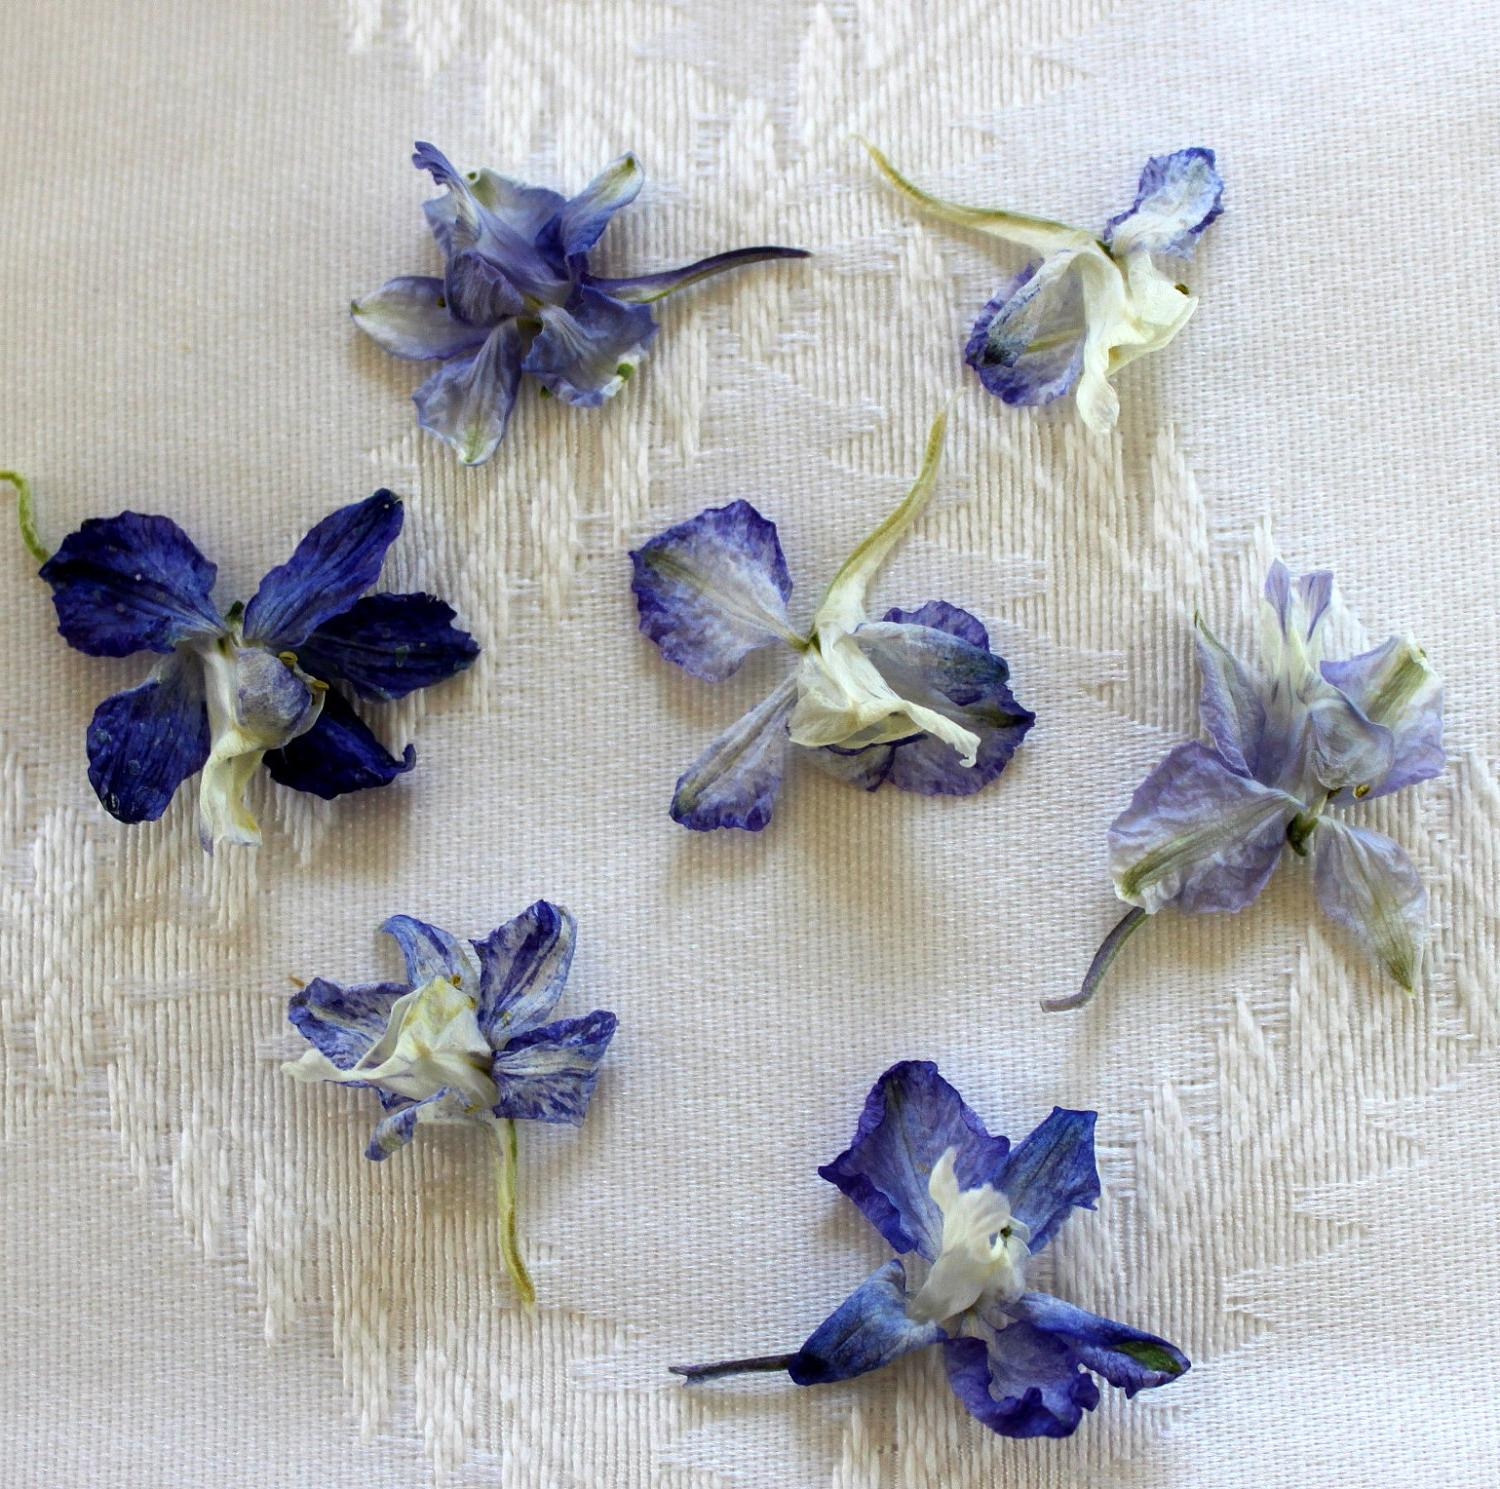 Lavender Wedding Flowers 1000 Dried Larkspur. From LarkspurHill